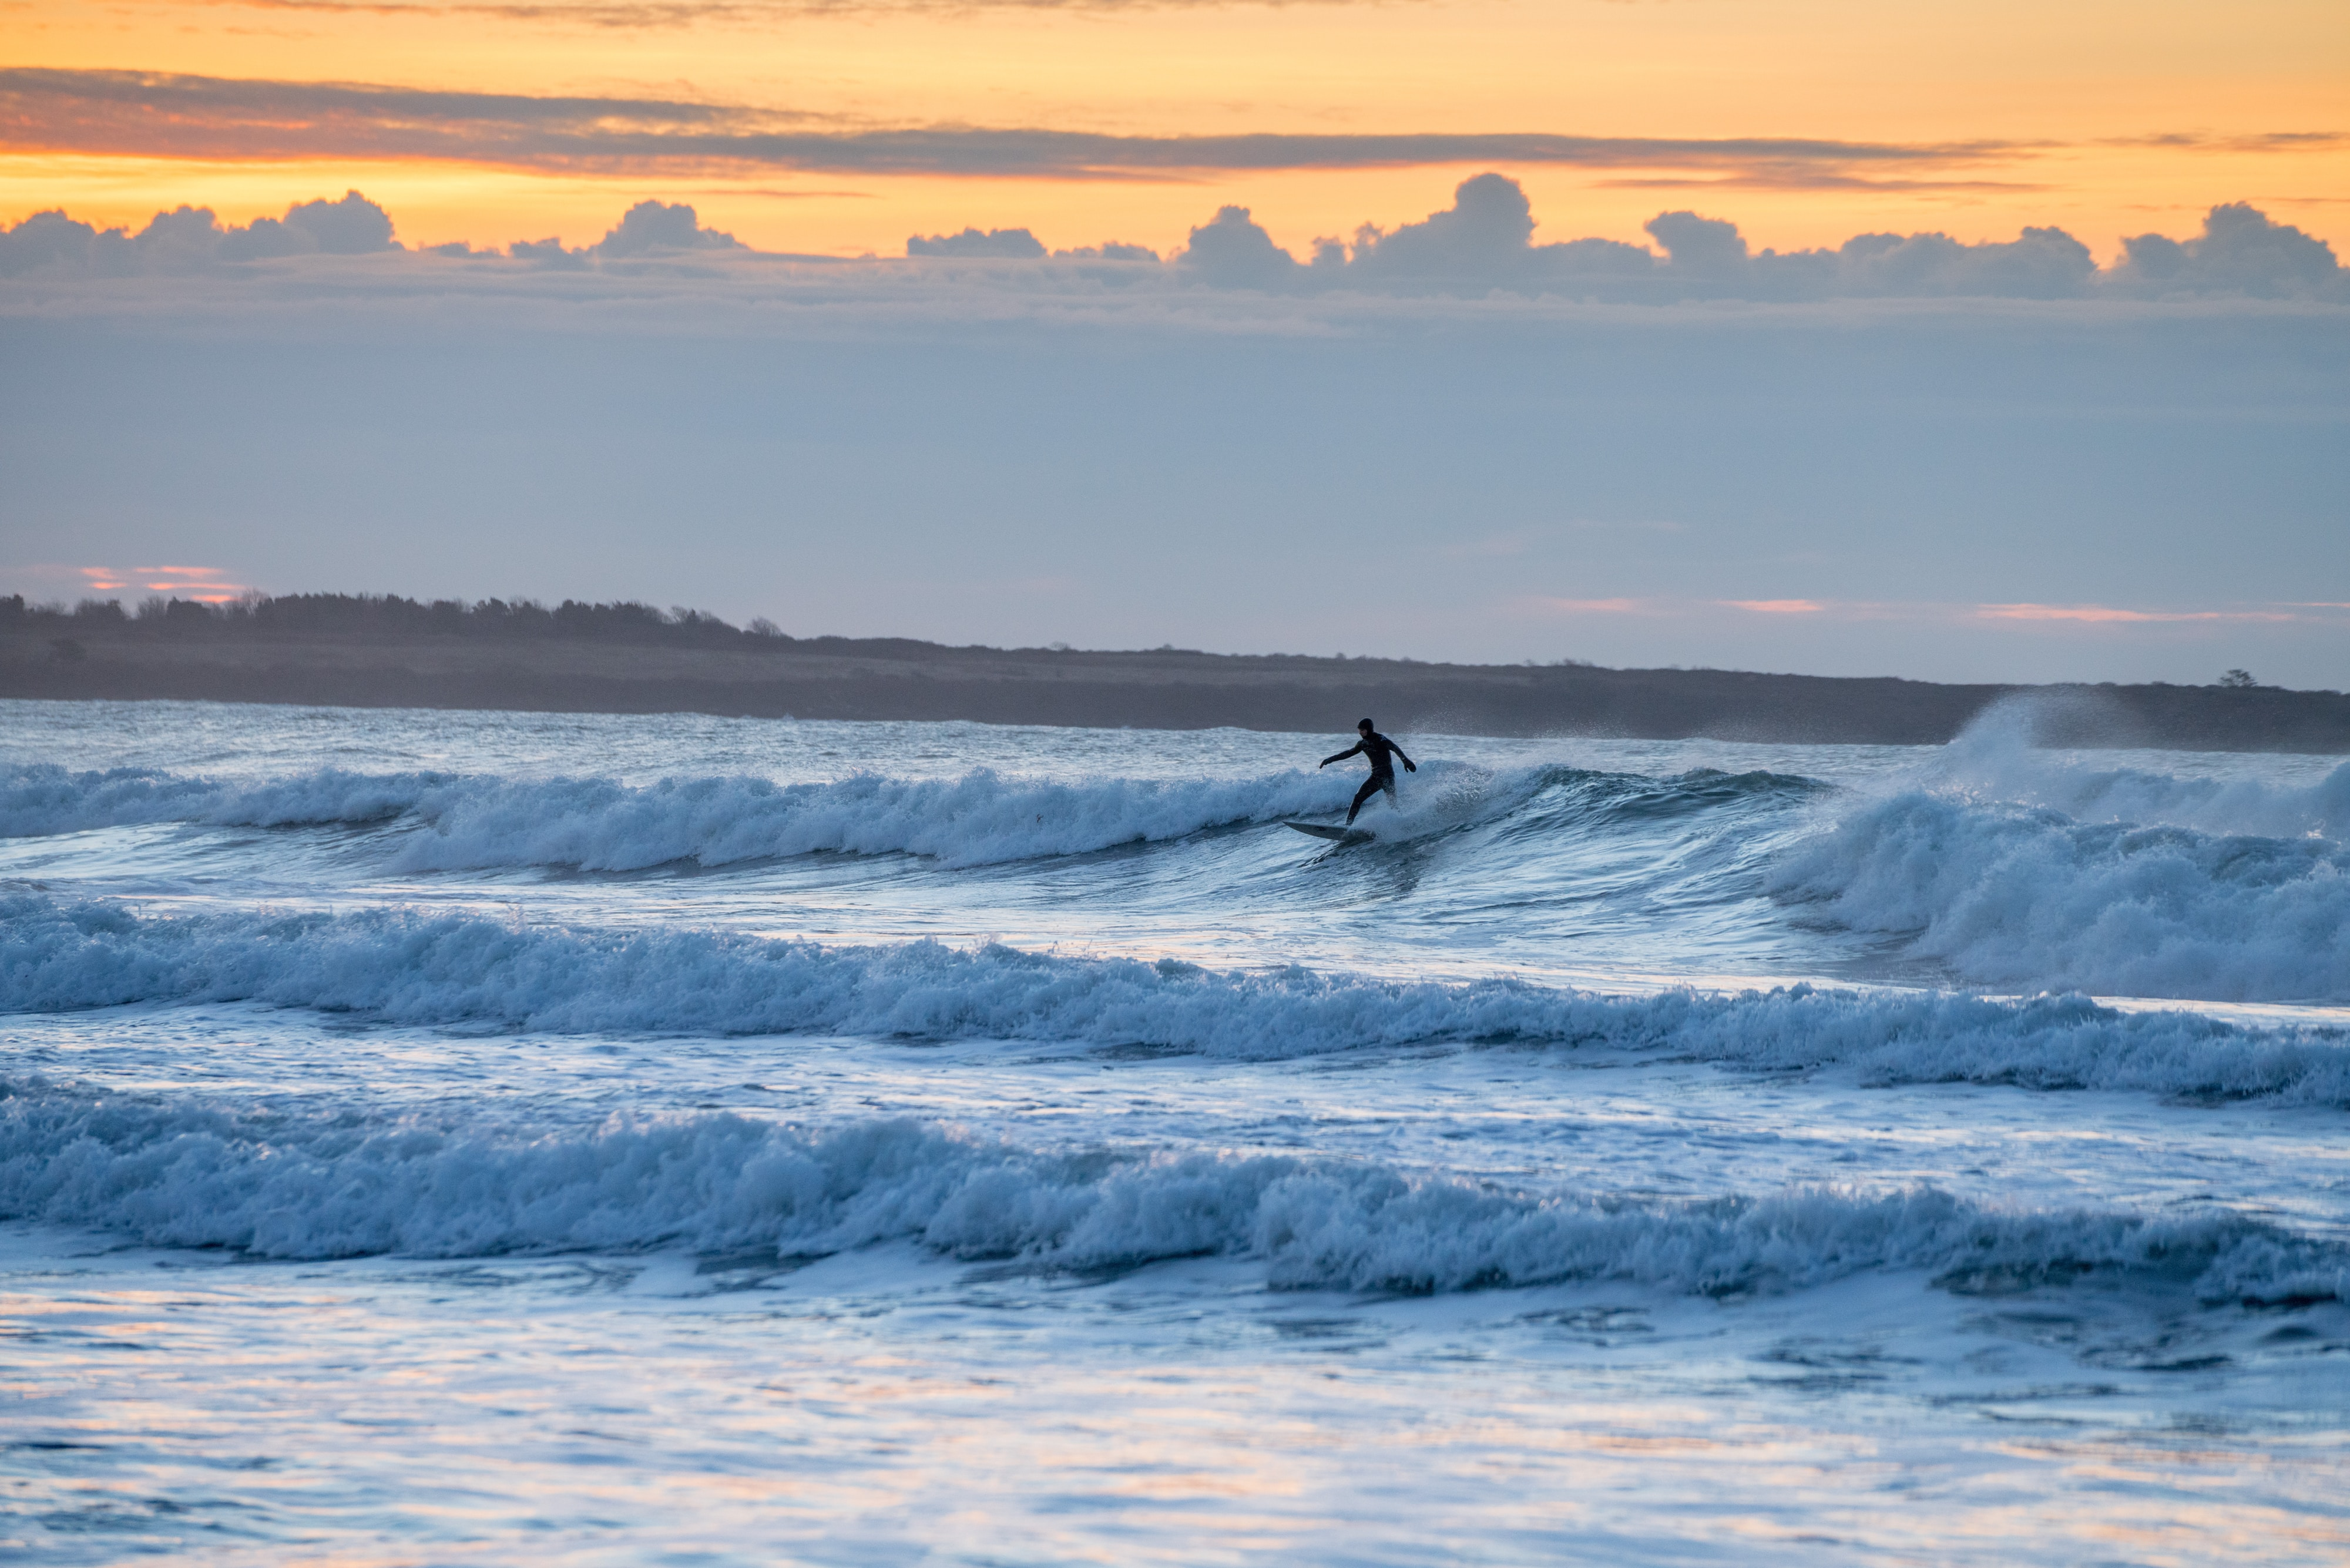 101600 download wallpaper Sports, Surfer, Serfing, Ocean, Dusk, Twilight, Waves screensavers and pictures for free